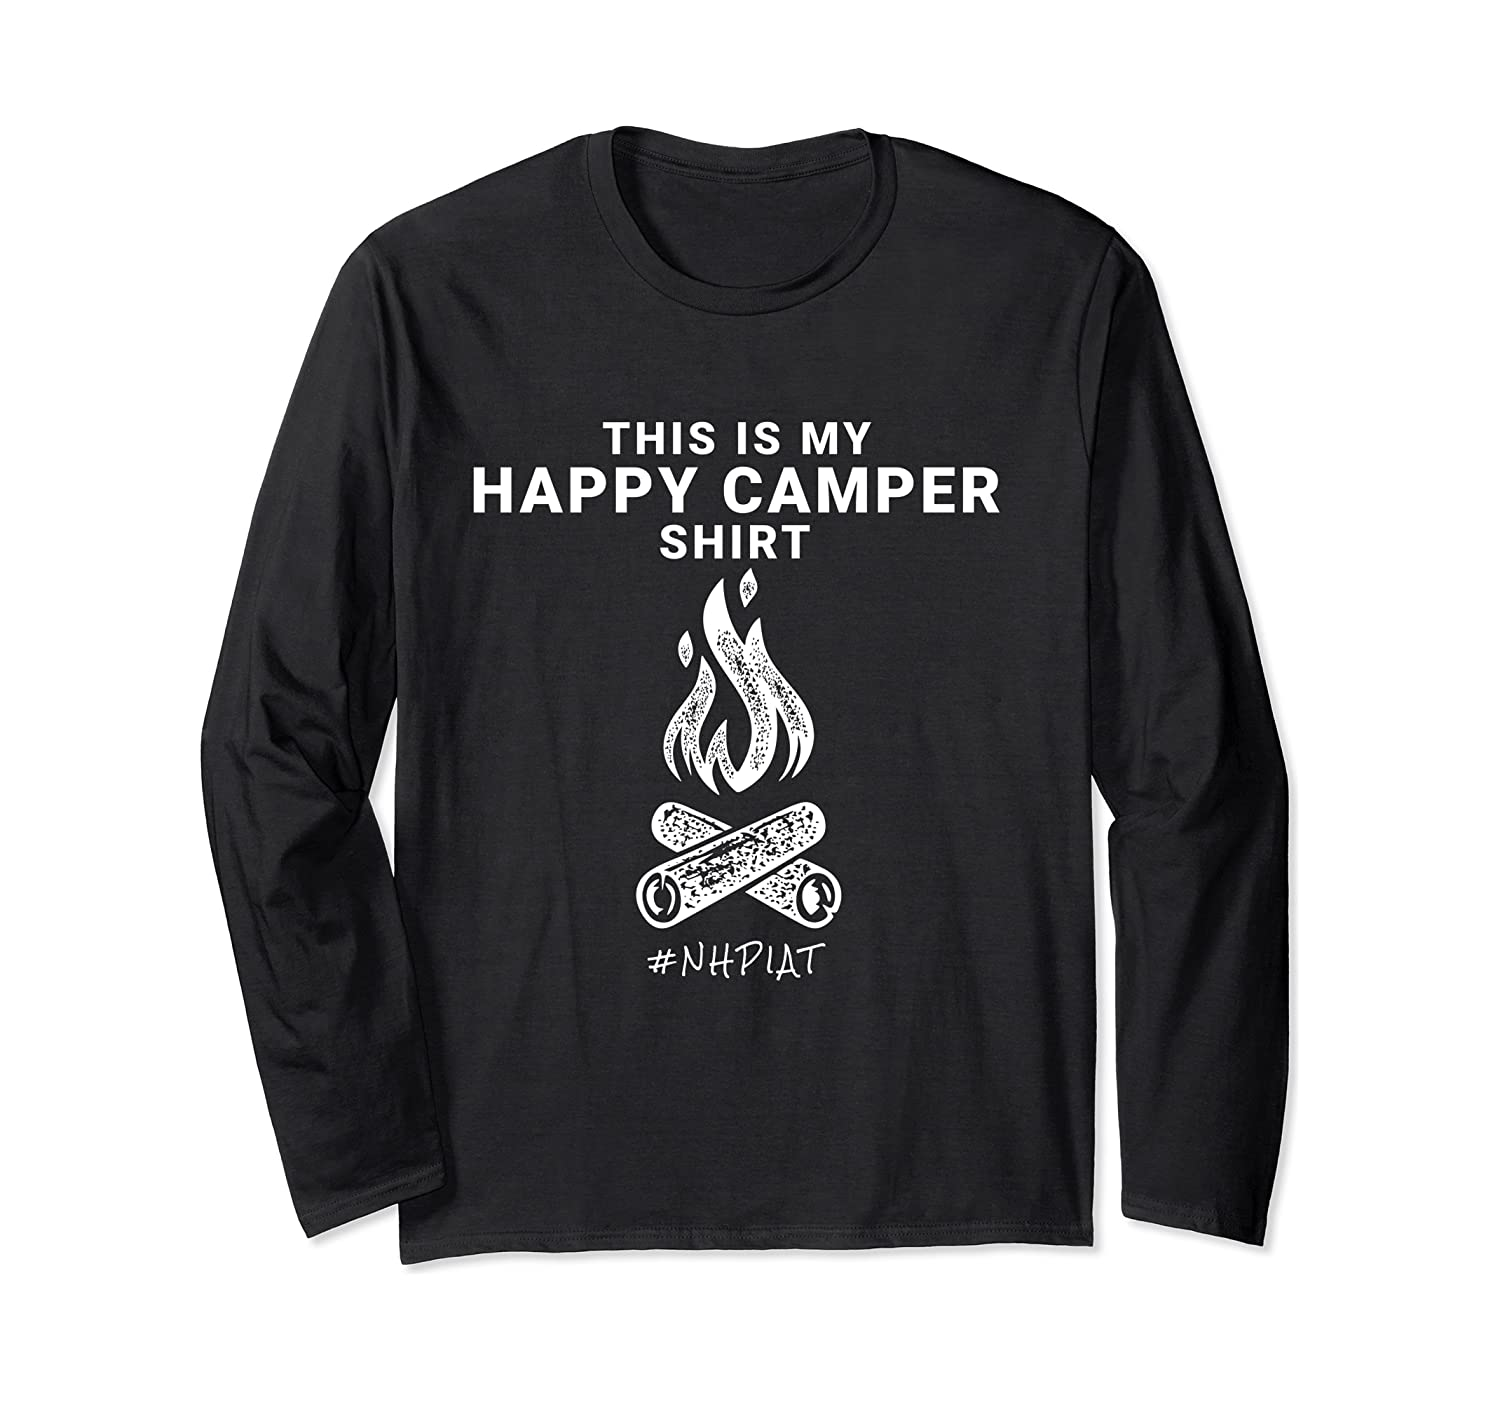 NHPIAT THIS IS MY HAPPY CAMPER SHIRT #NHPIAT Long Sleeve